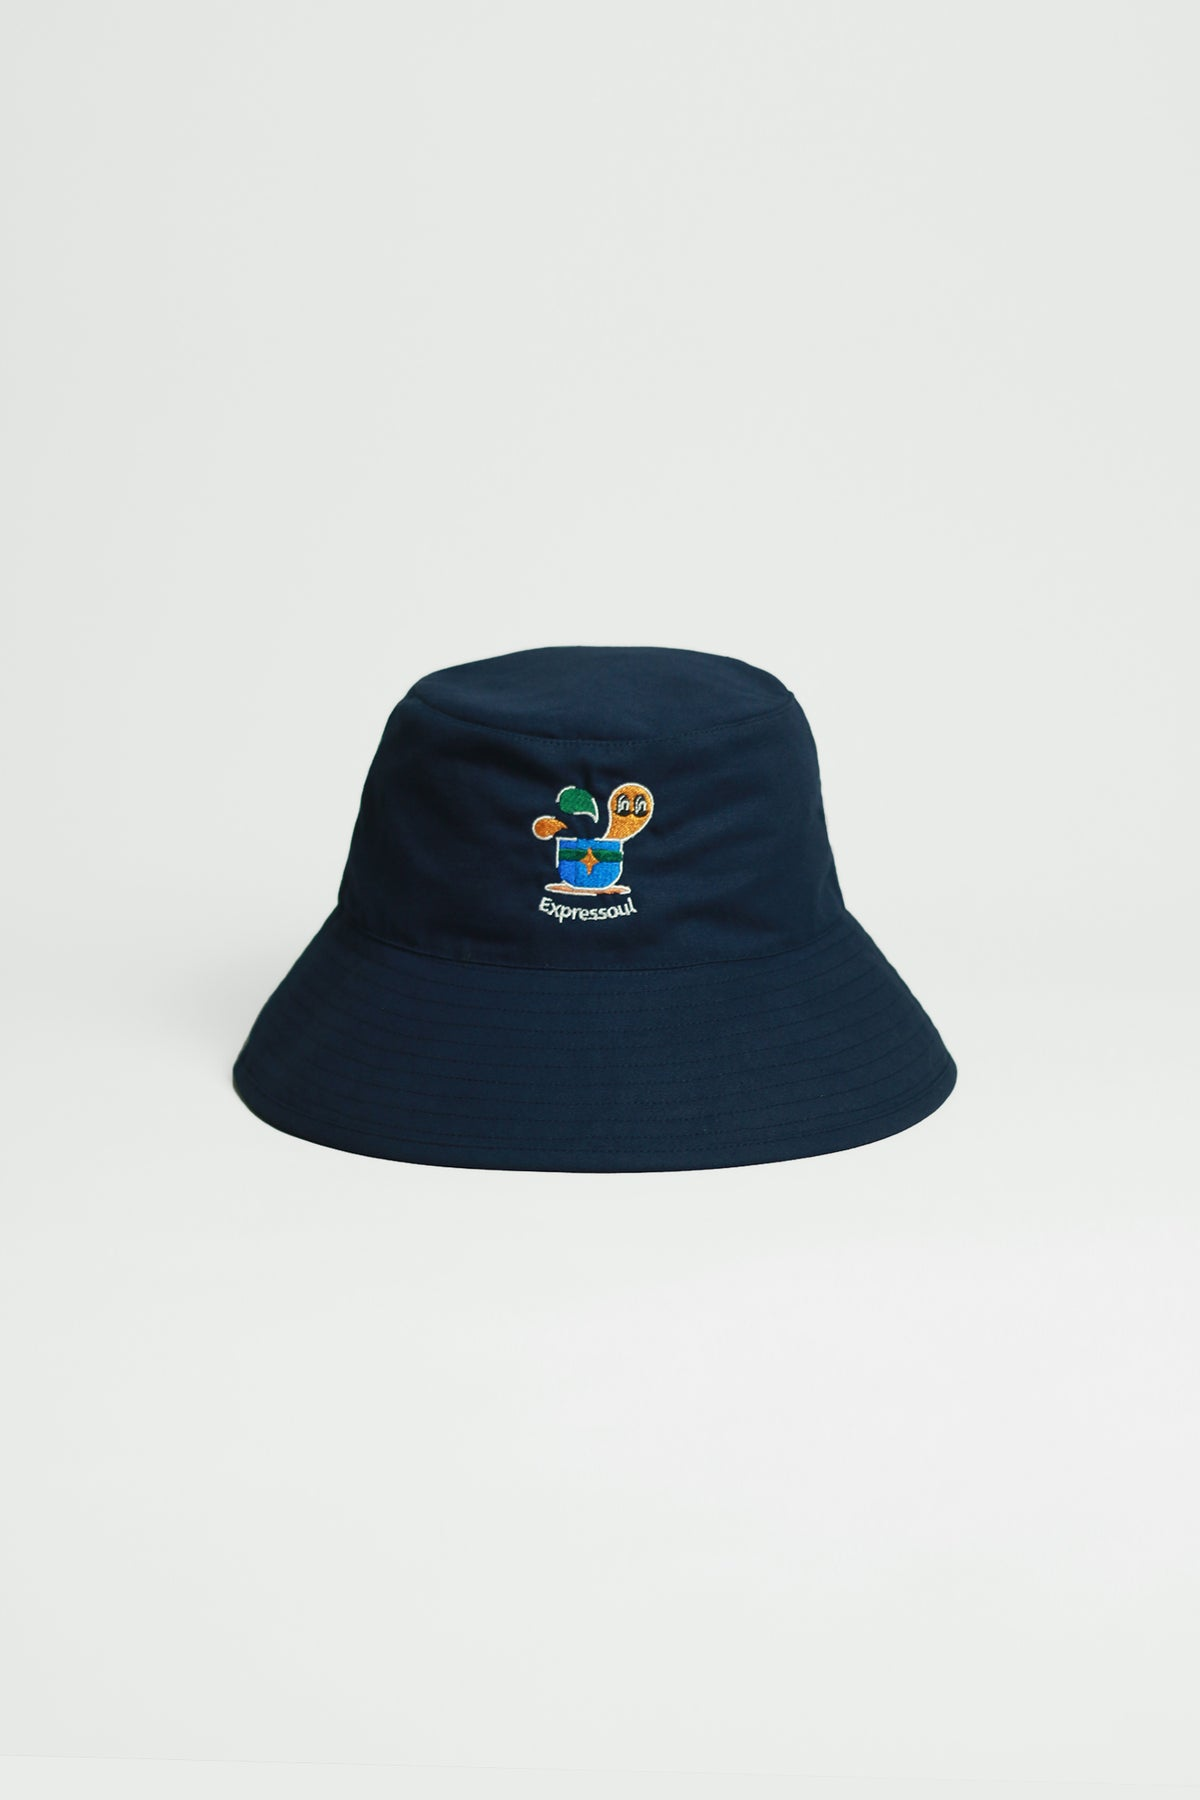 "Image of ""Expressoul"" Bucket Hat"